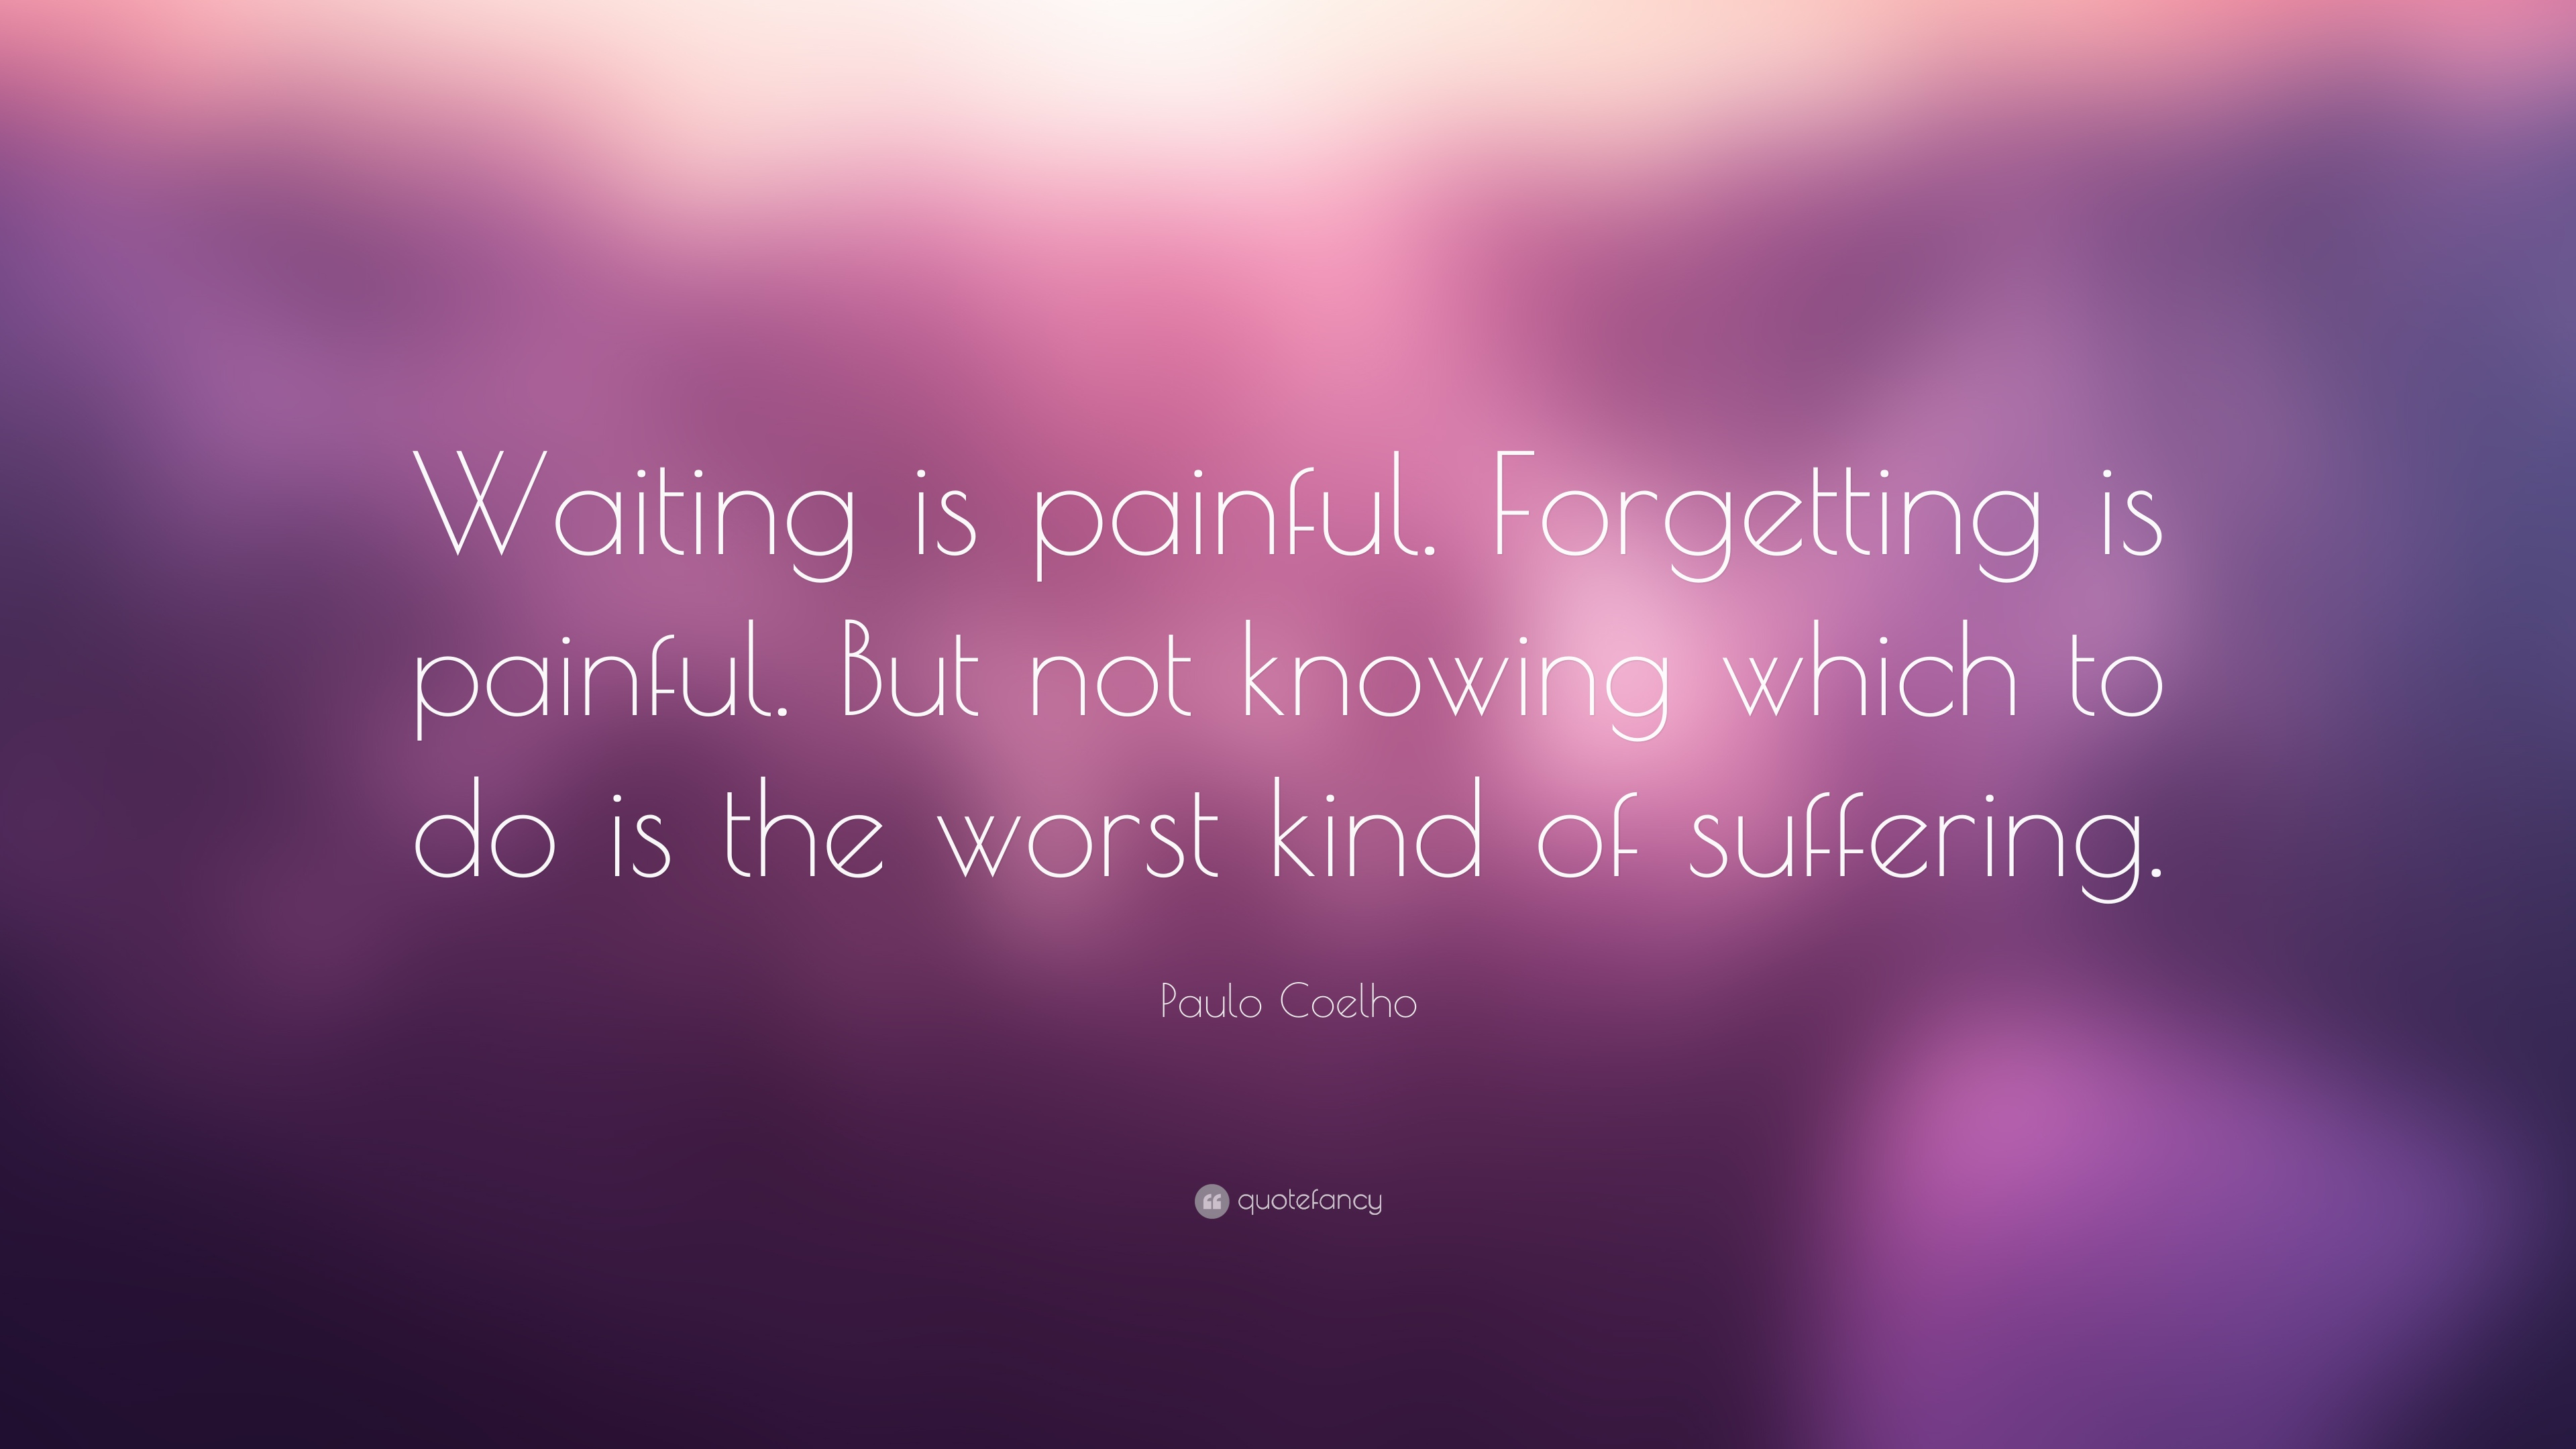 Paulo Coelho Quote Waiting Is Painful Forgetting Is Painful But